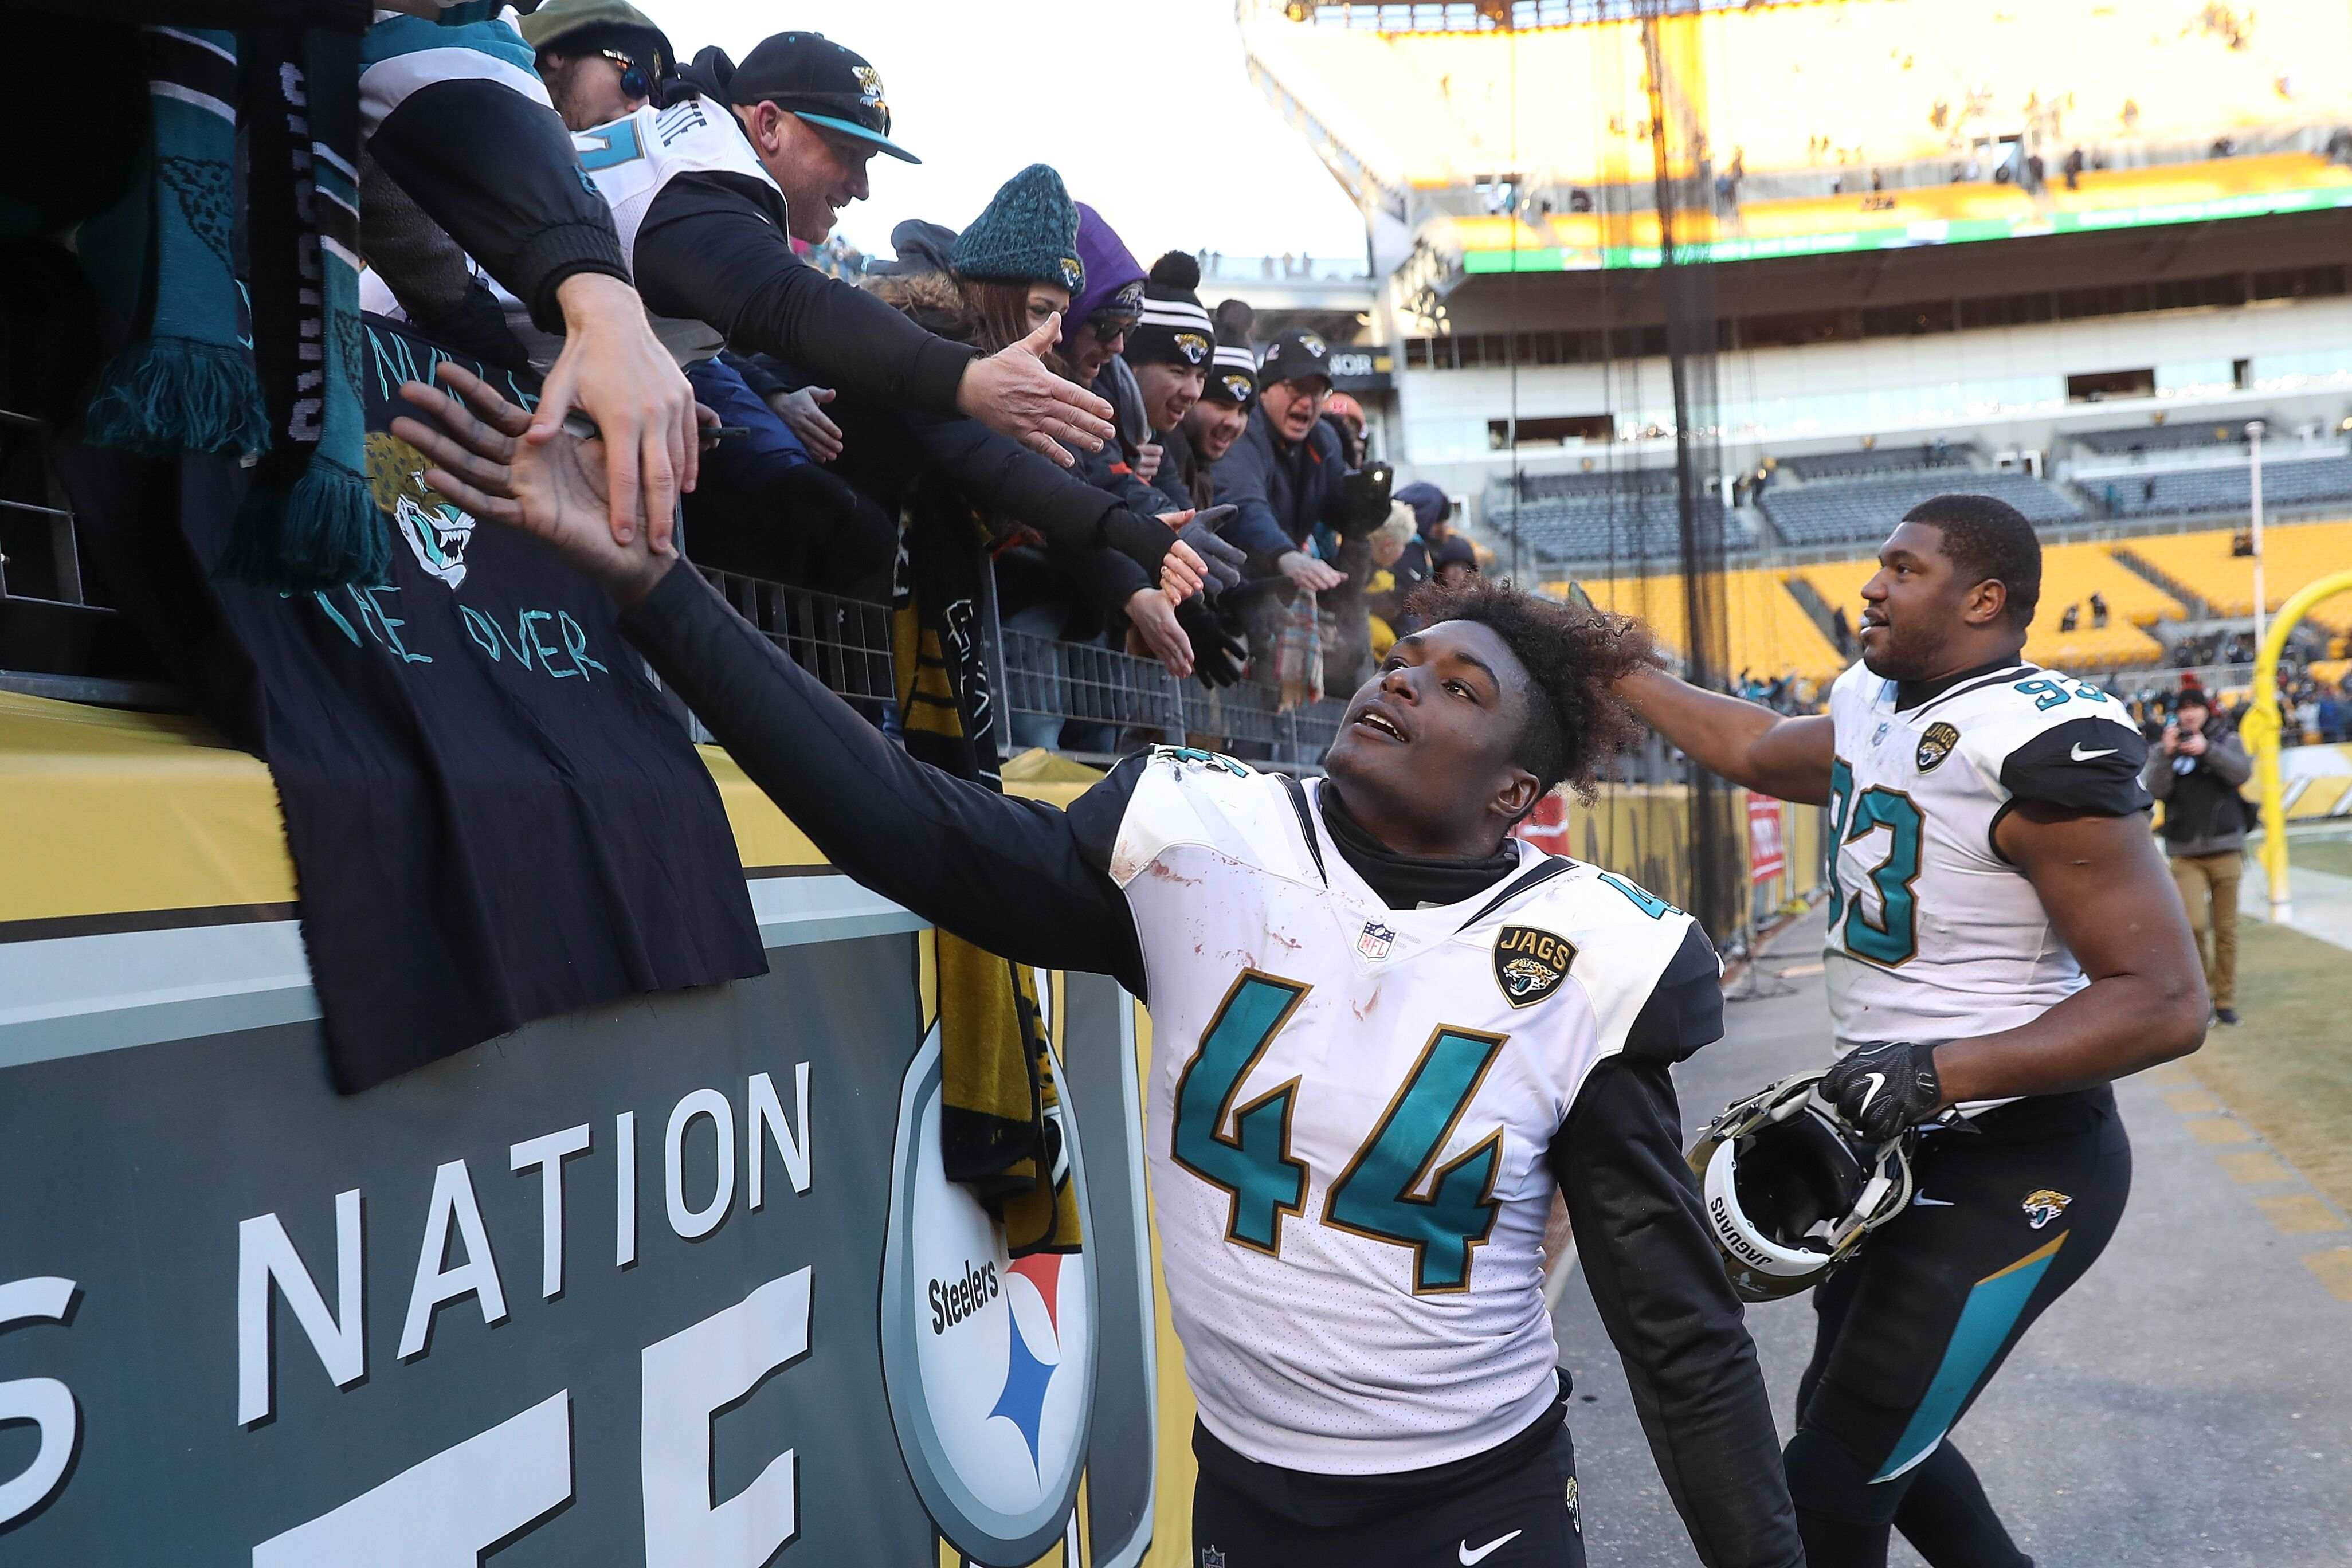 Jaguars game against Steelers still means something to Jacksonville